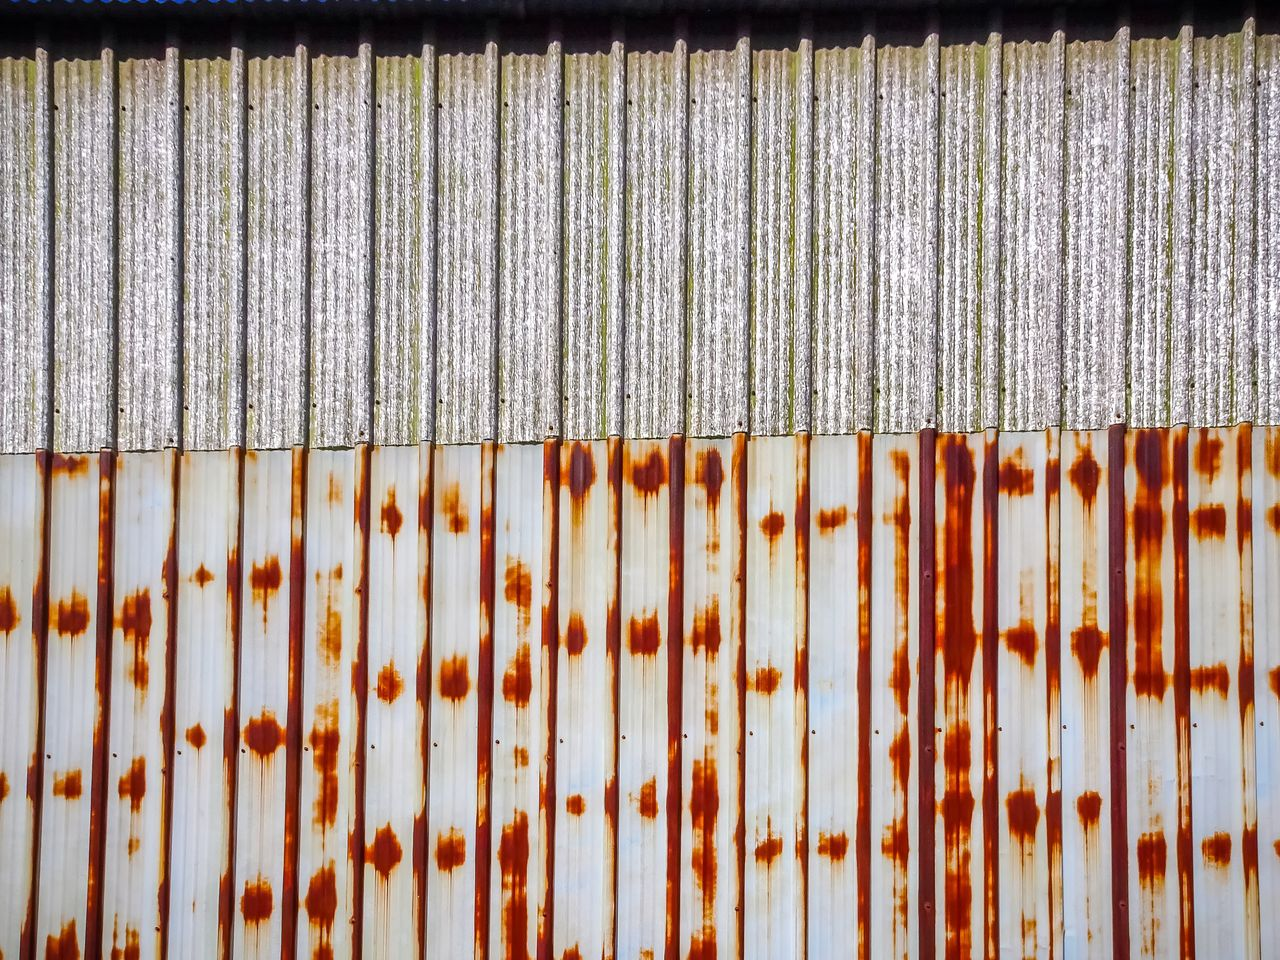 corrugated iron, full frame, backgrounds, metal, textured, pattern, day, close-up, outdoors, no people, rusty